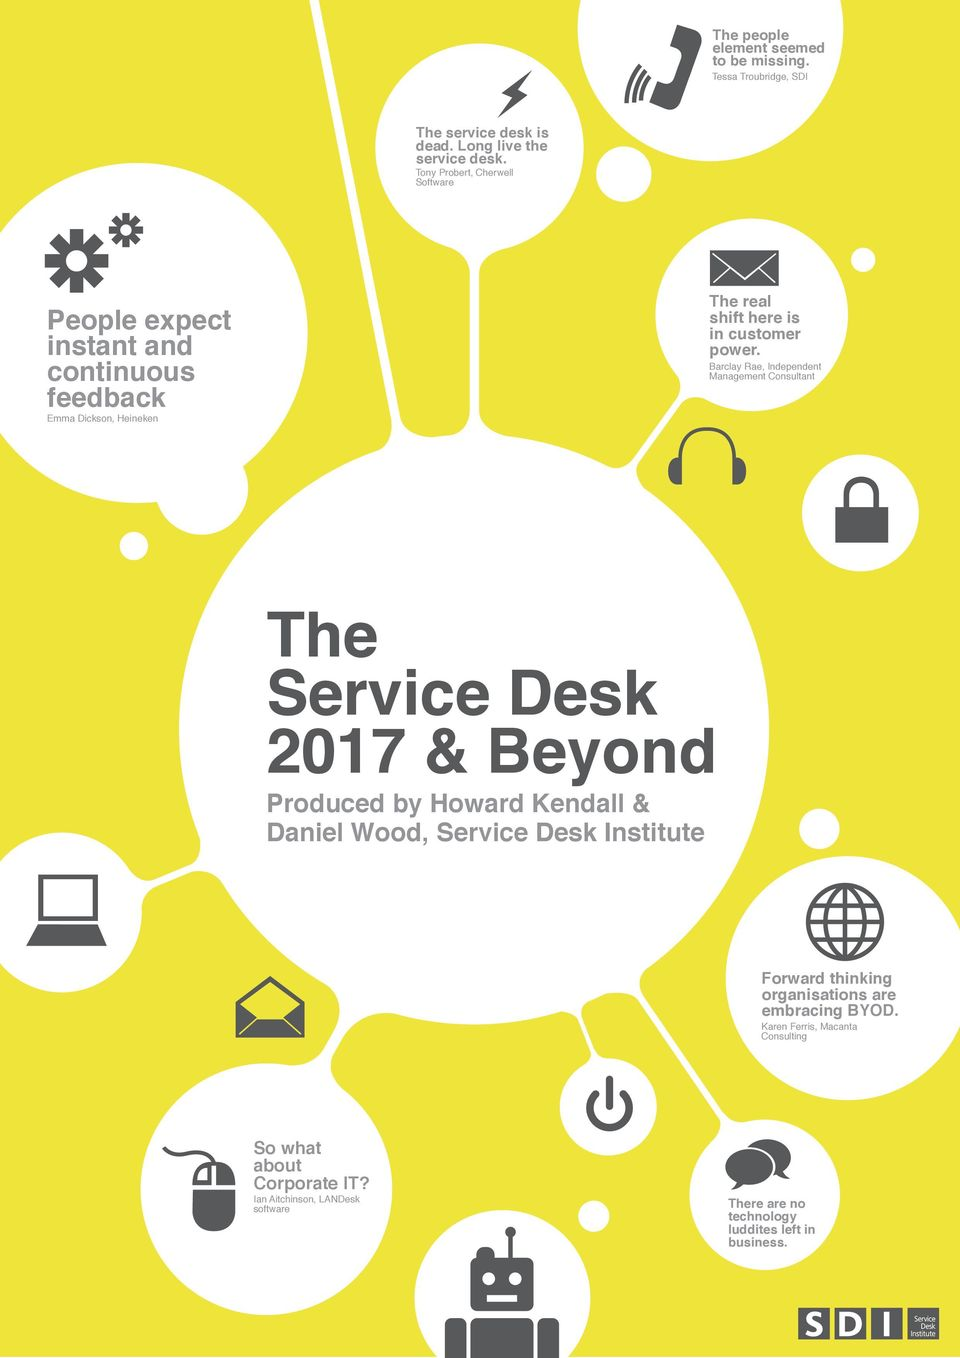 Barclay Rae, Independent Management Consultant The Service Desk 2017 & Beyond Produced by Howard Kendall & Daniel Wood, Service Desk Institute